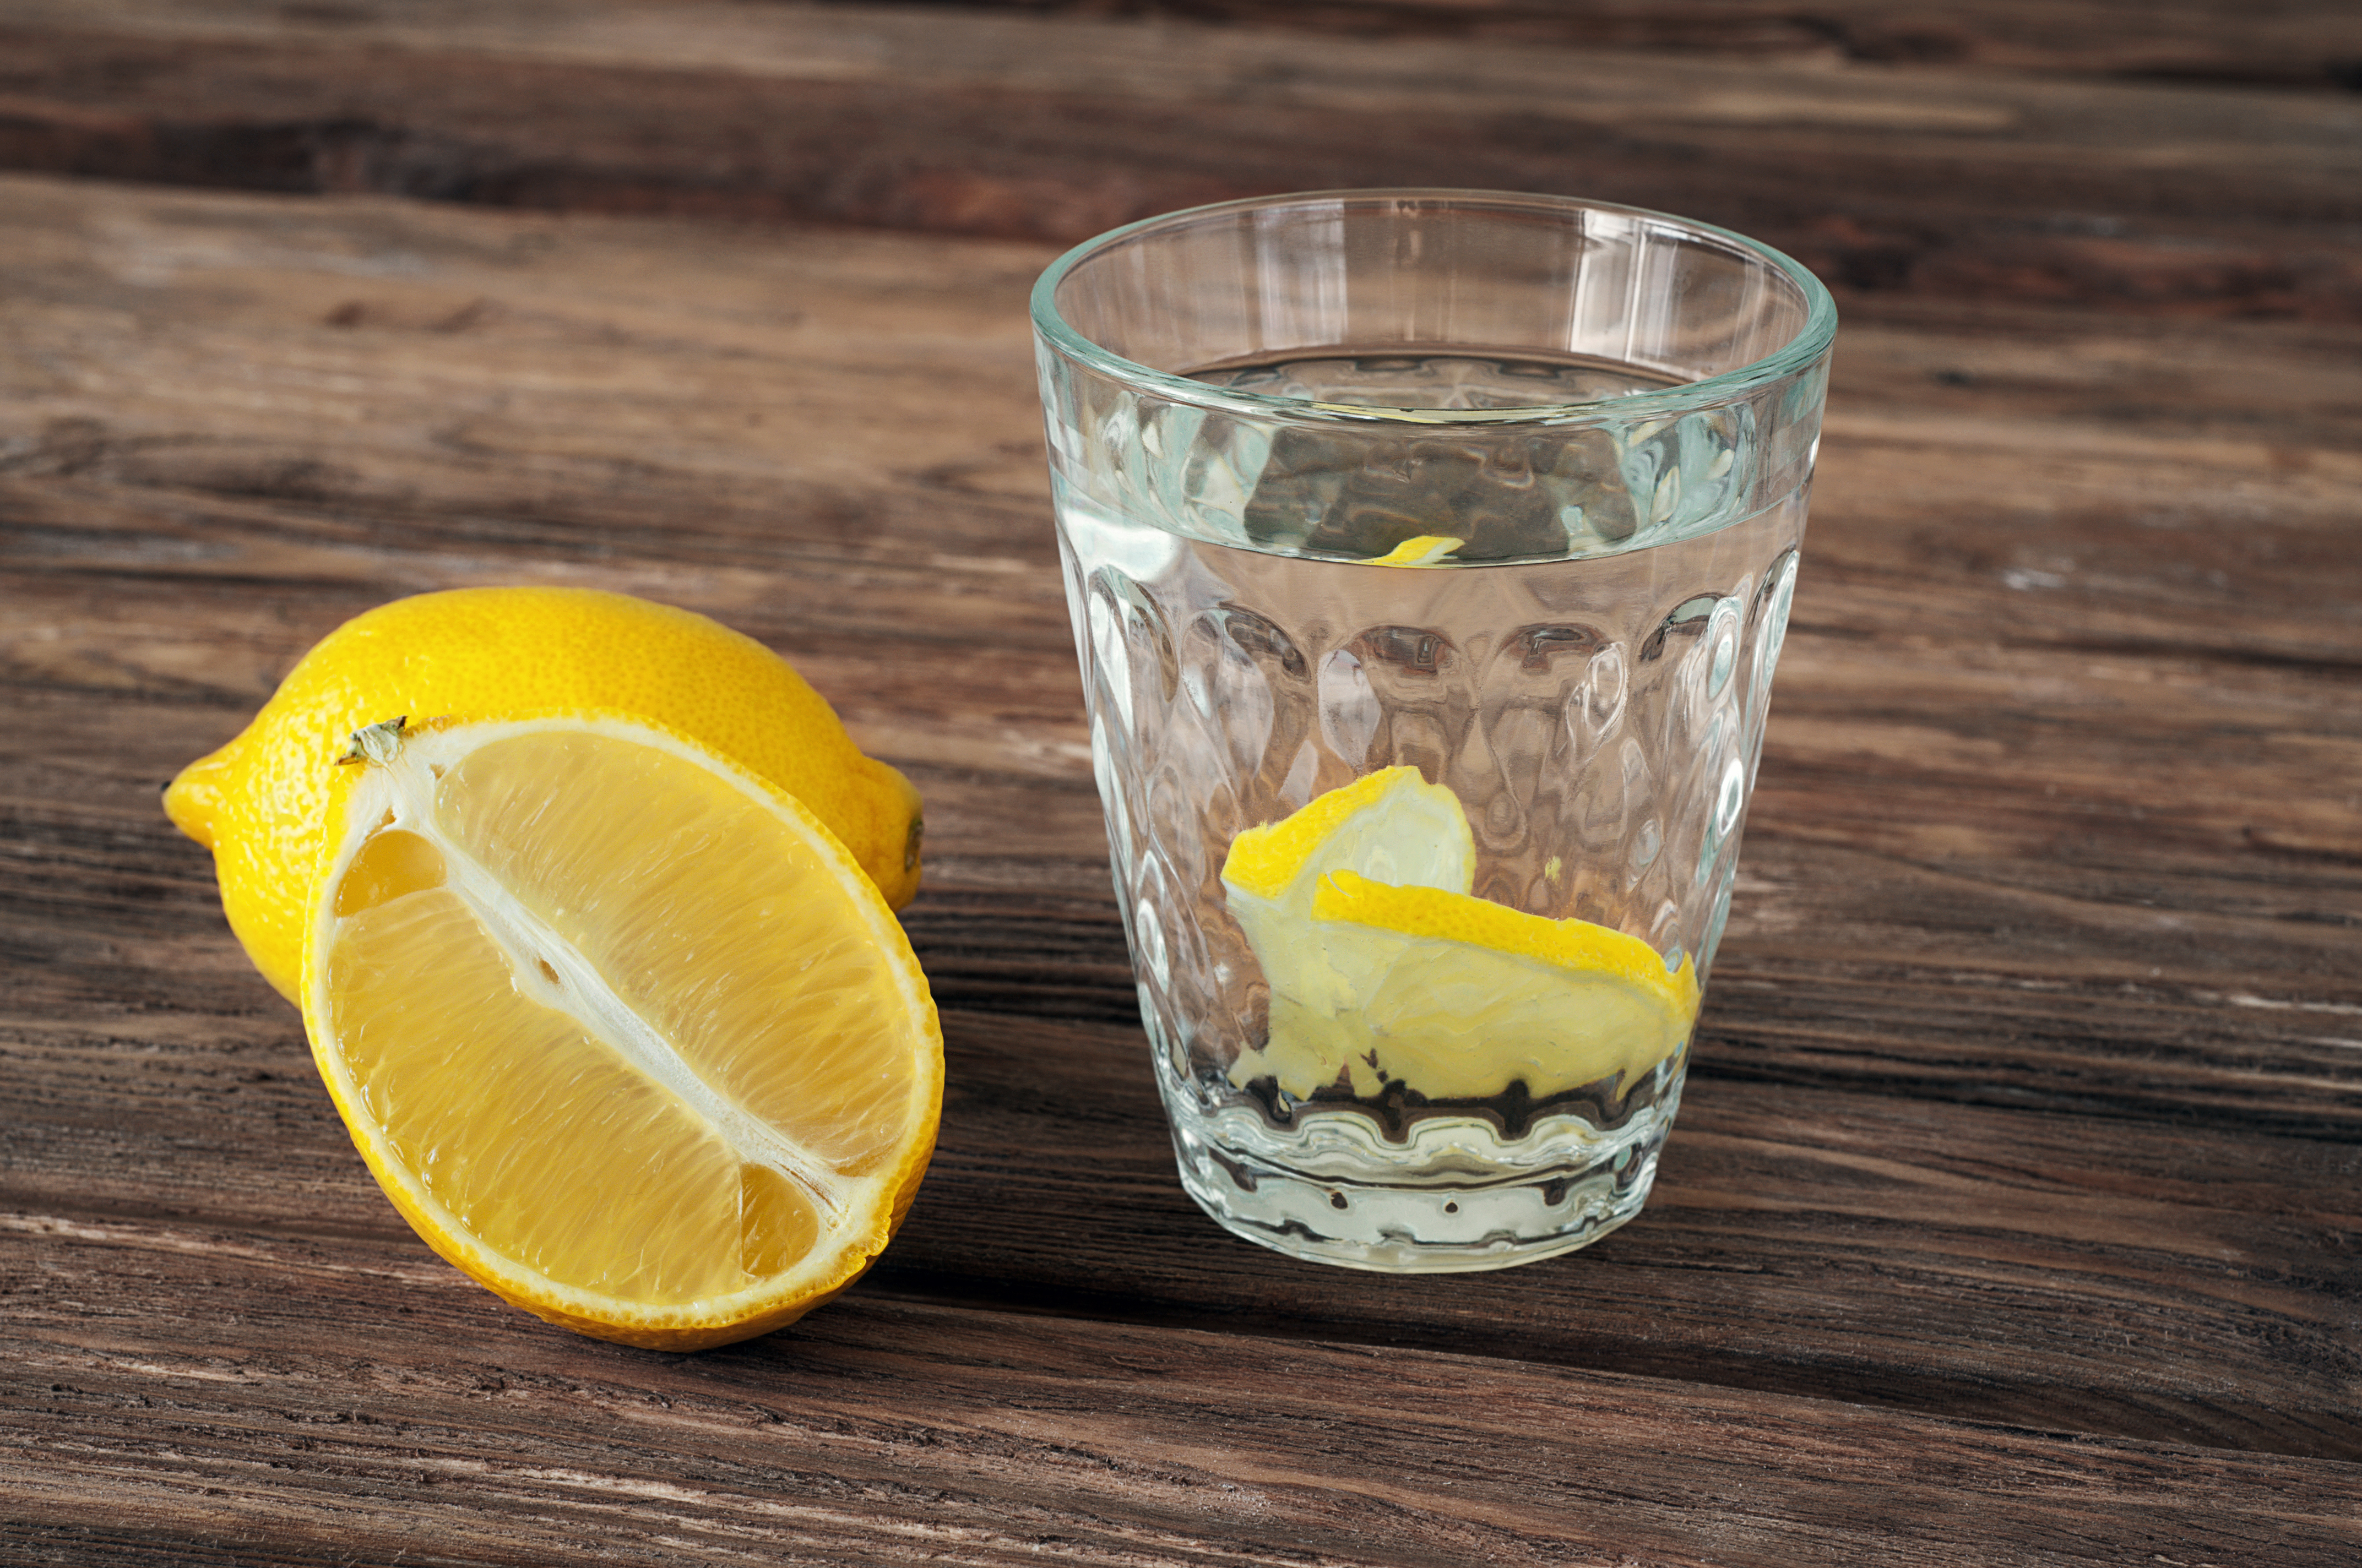 Canva - glass of water with lemon slices